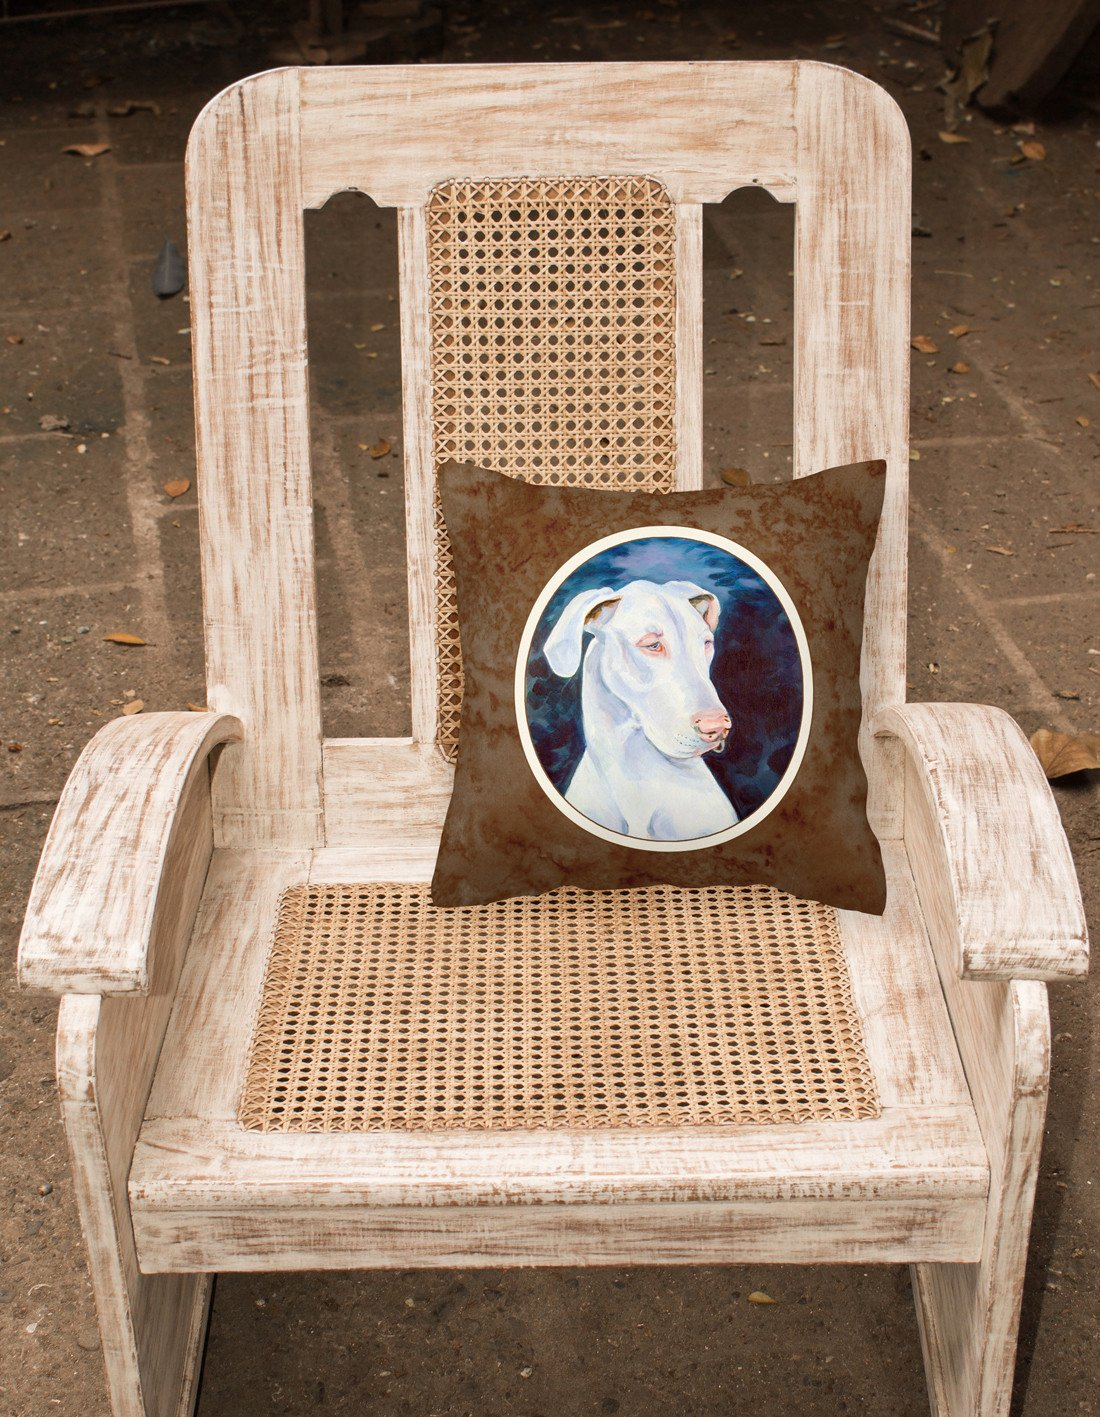 White Great Dane Fabric Decorative Pillow 7279PW1414 - the-store.com